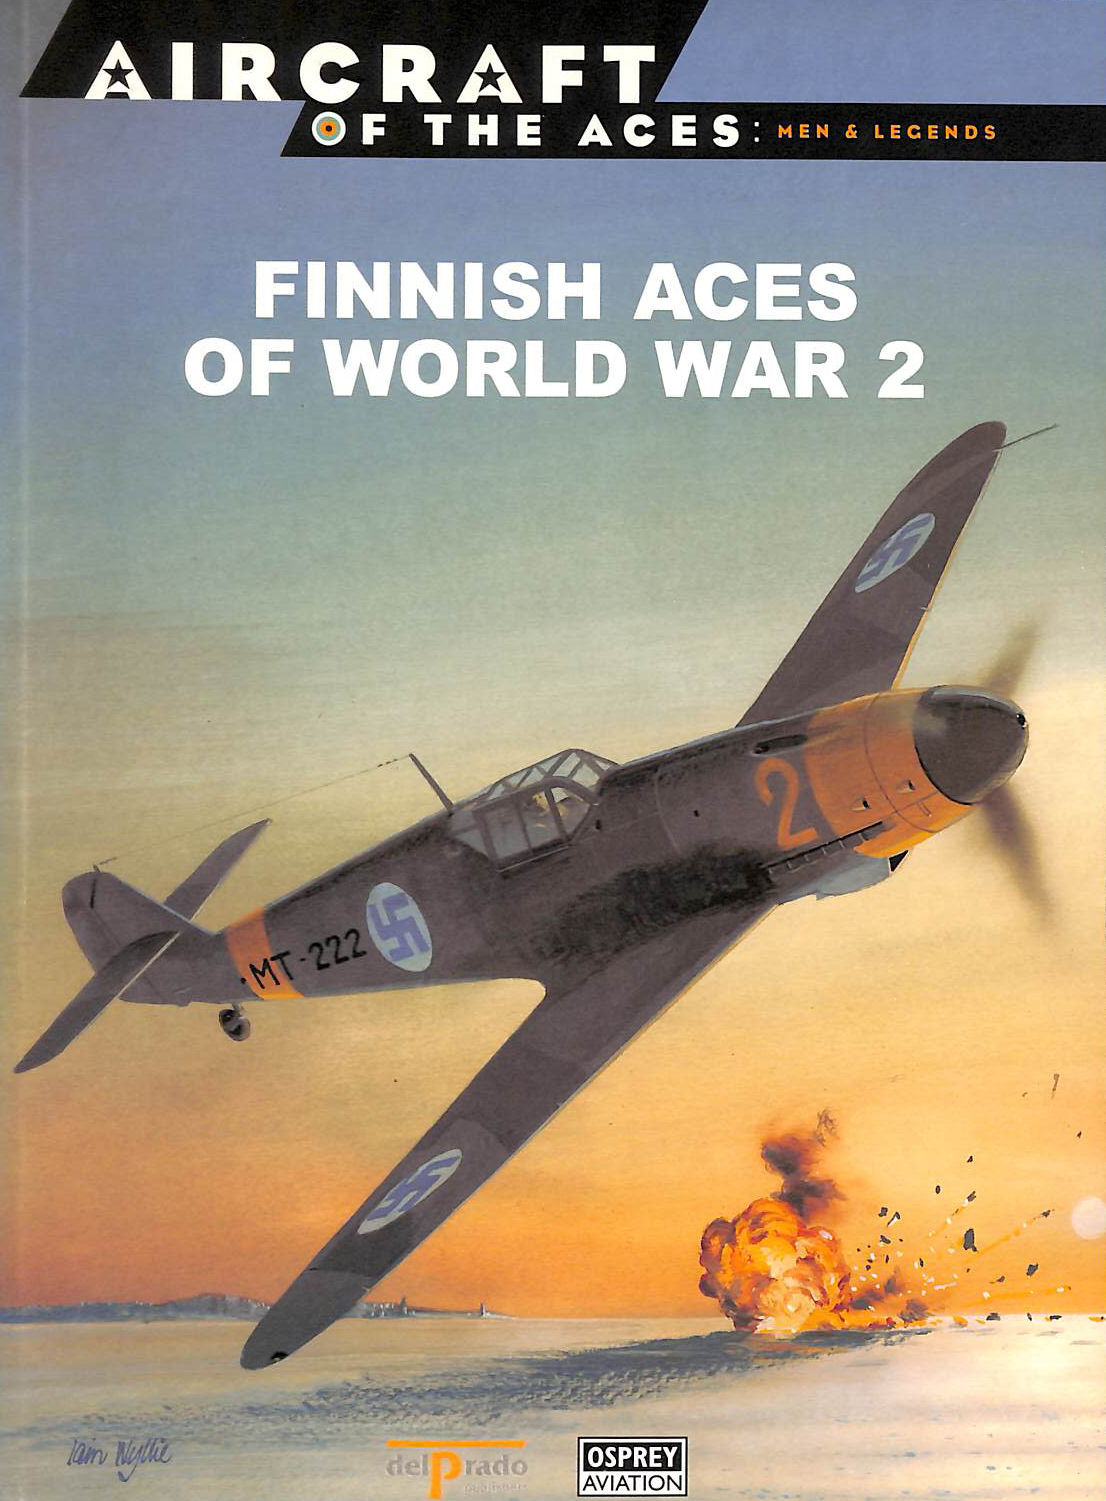 Image for Finnish Aces Of World War 2 (Aircraft Of The Aces: Men & Legends 32)